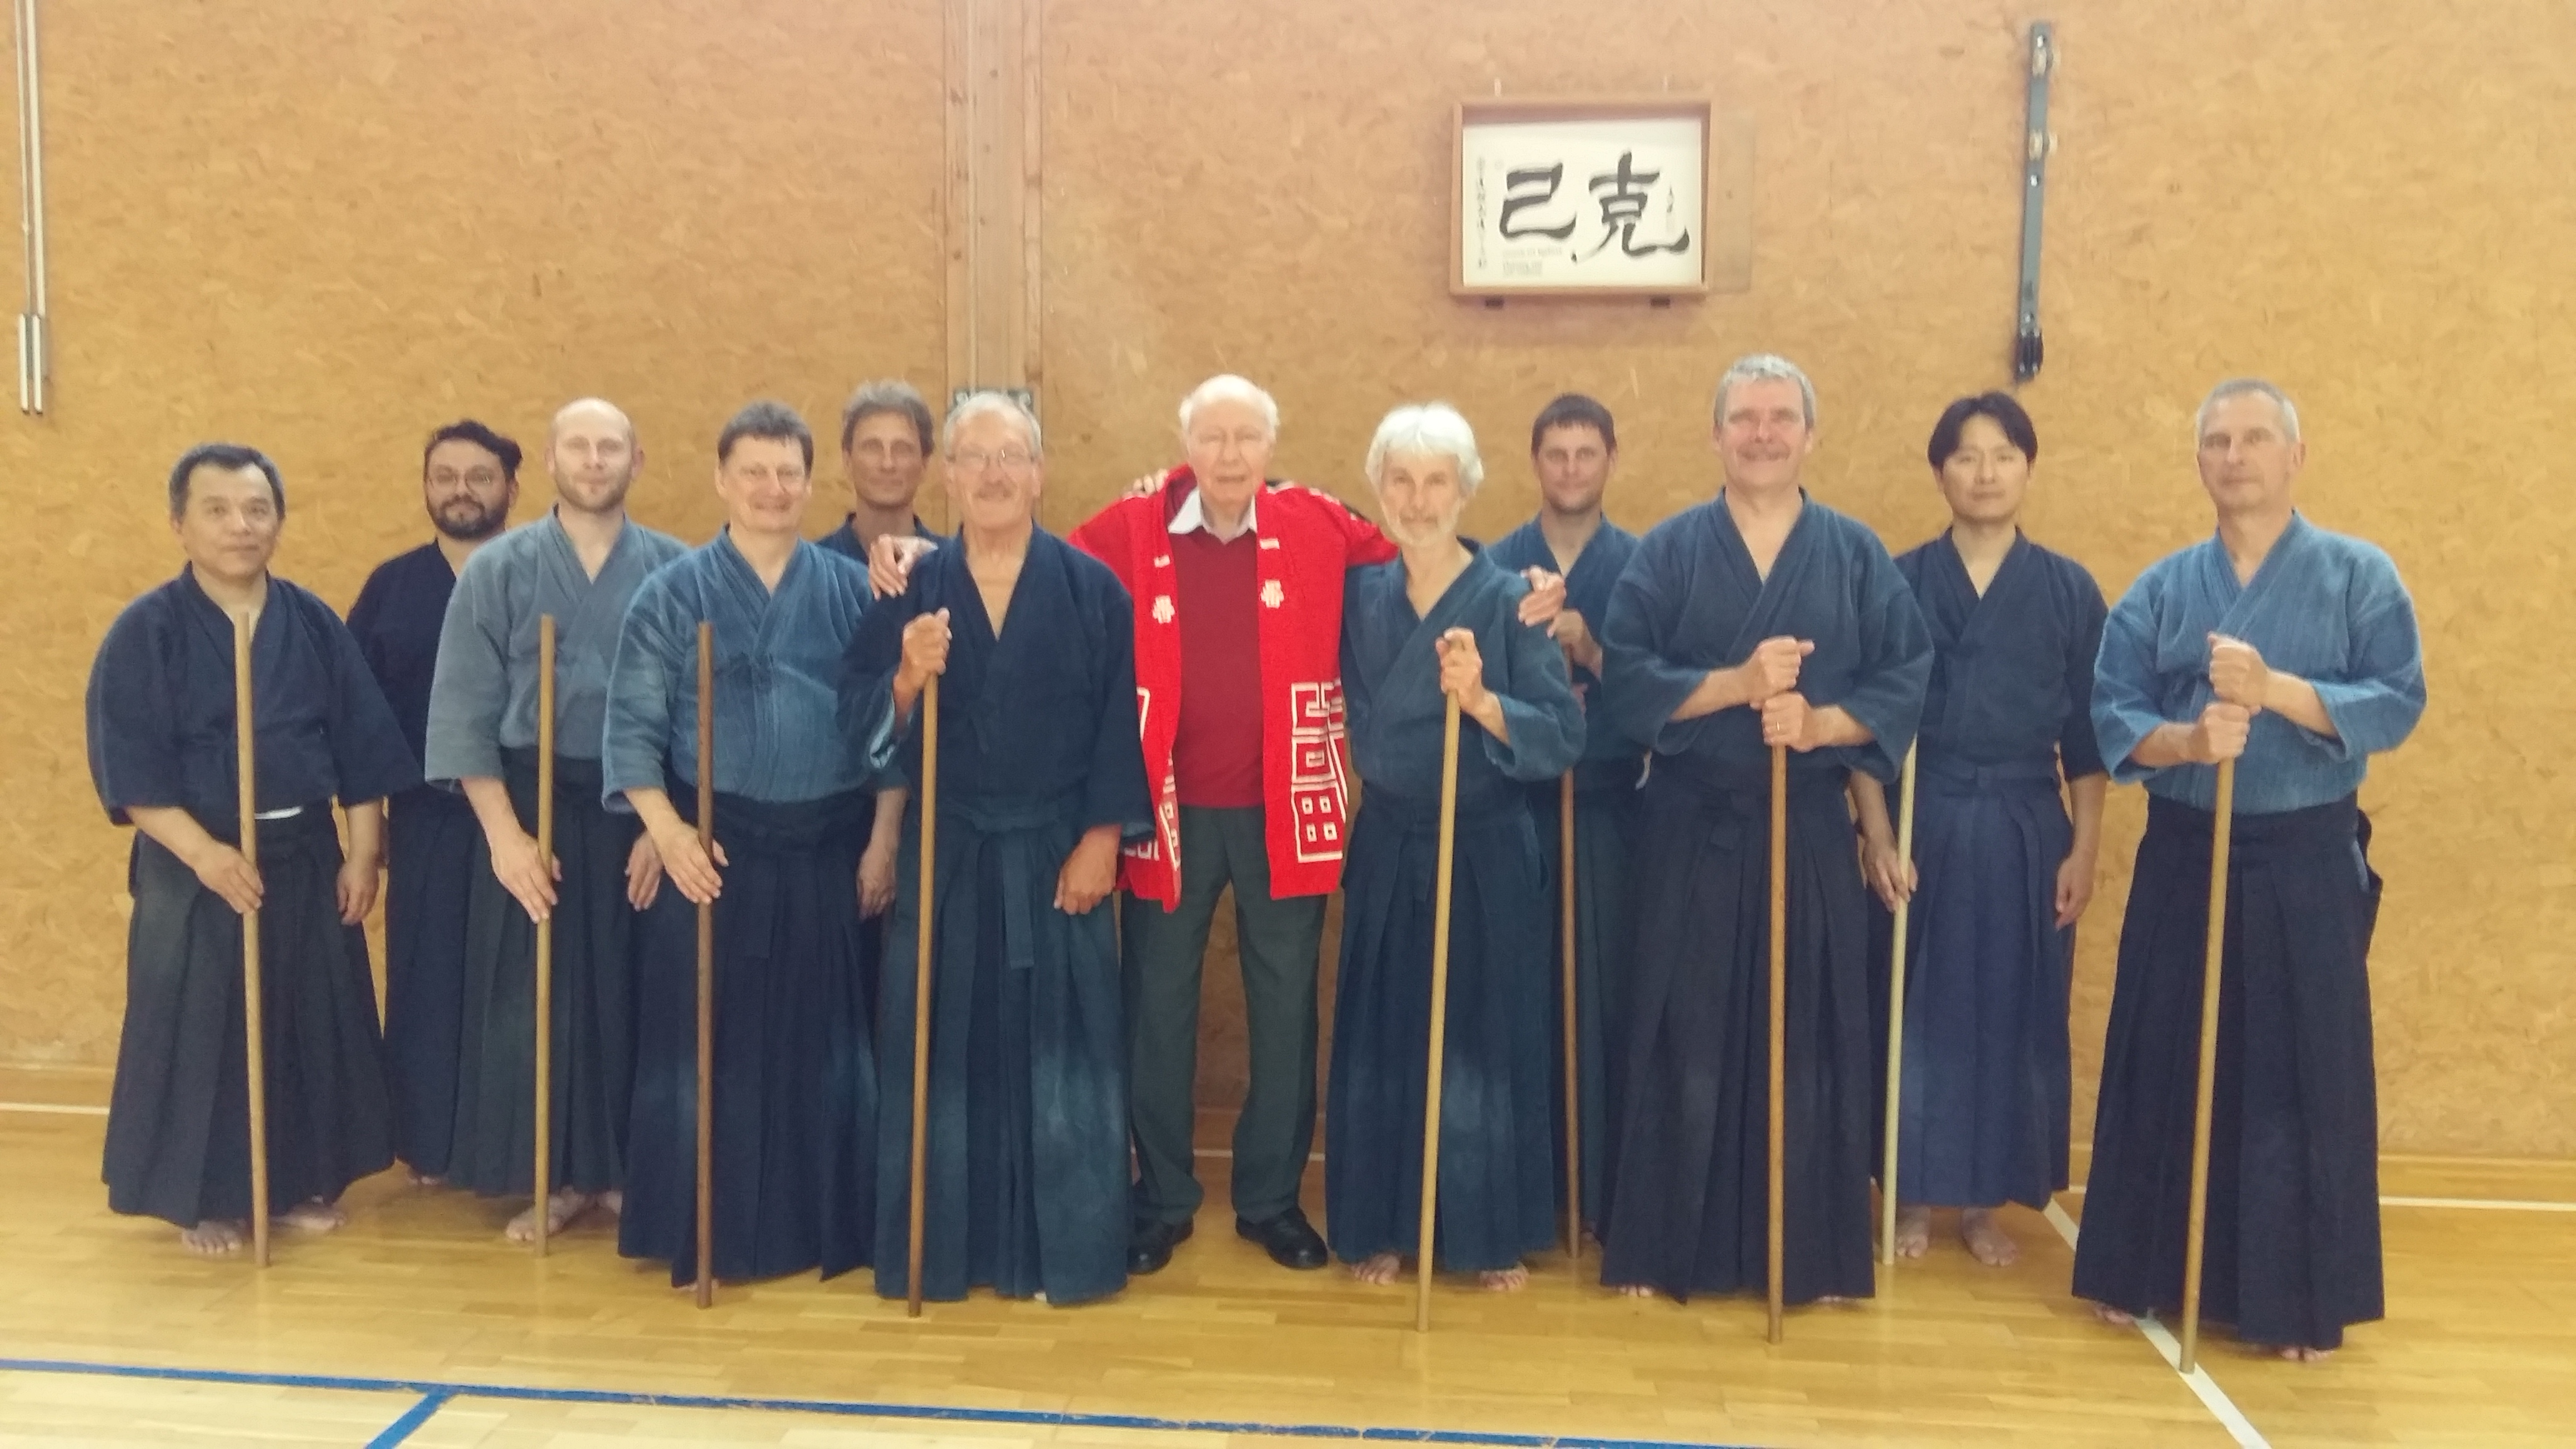 George visiting shinto muso ryu practice in Geneva